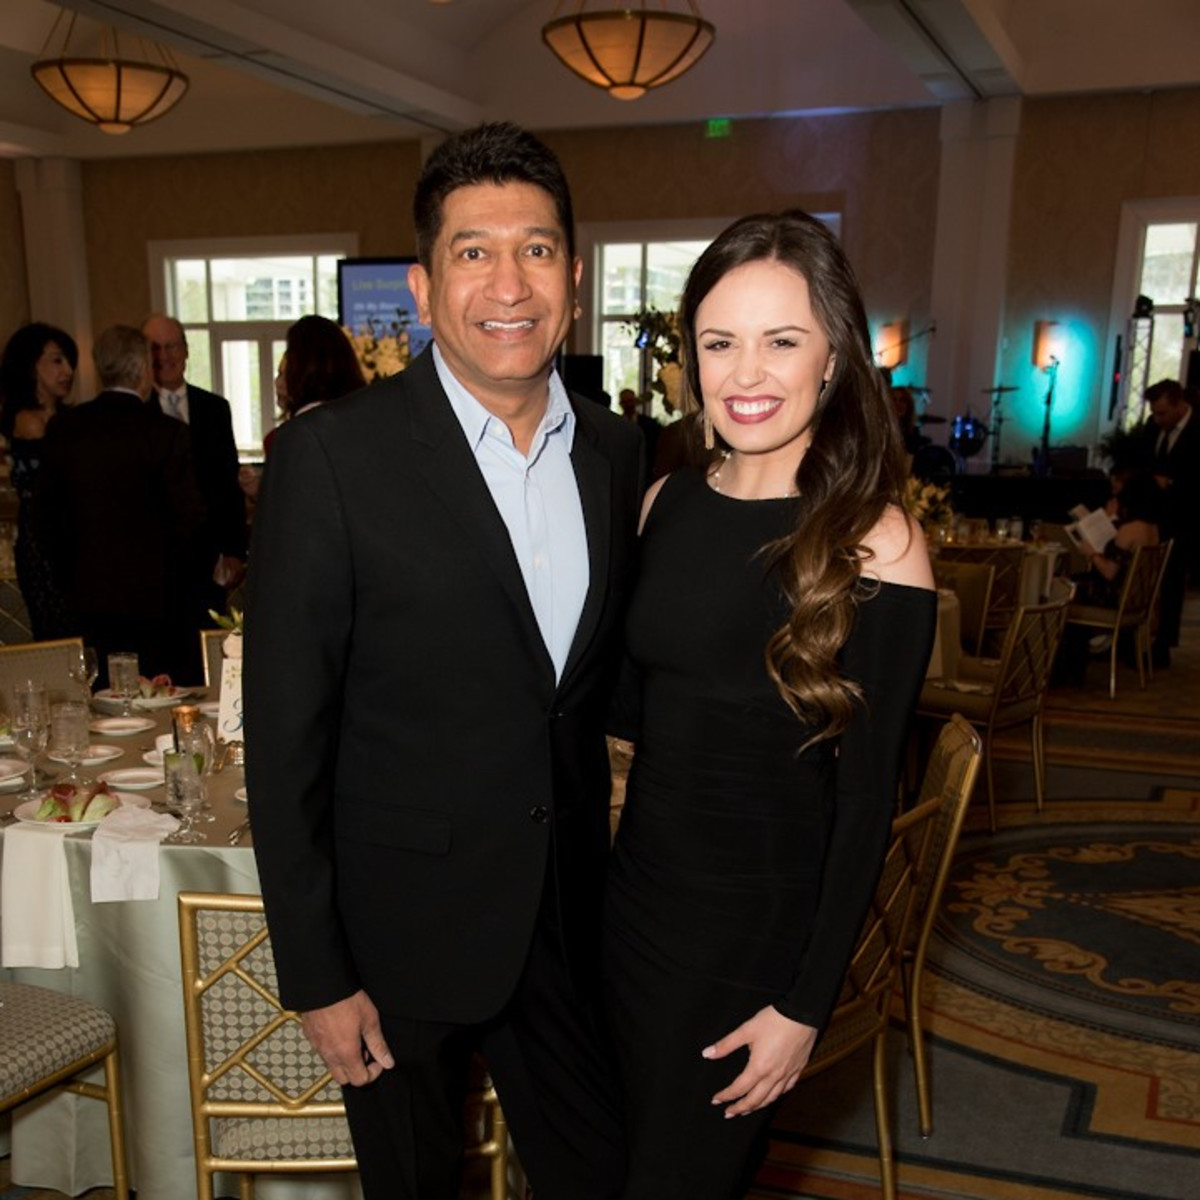 Ronald McDonald gala, Sheldon Arora and Morgan Miller